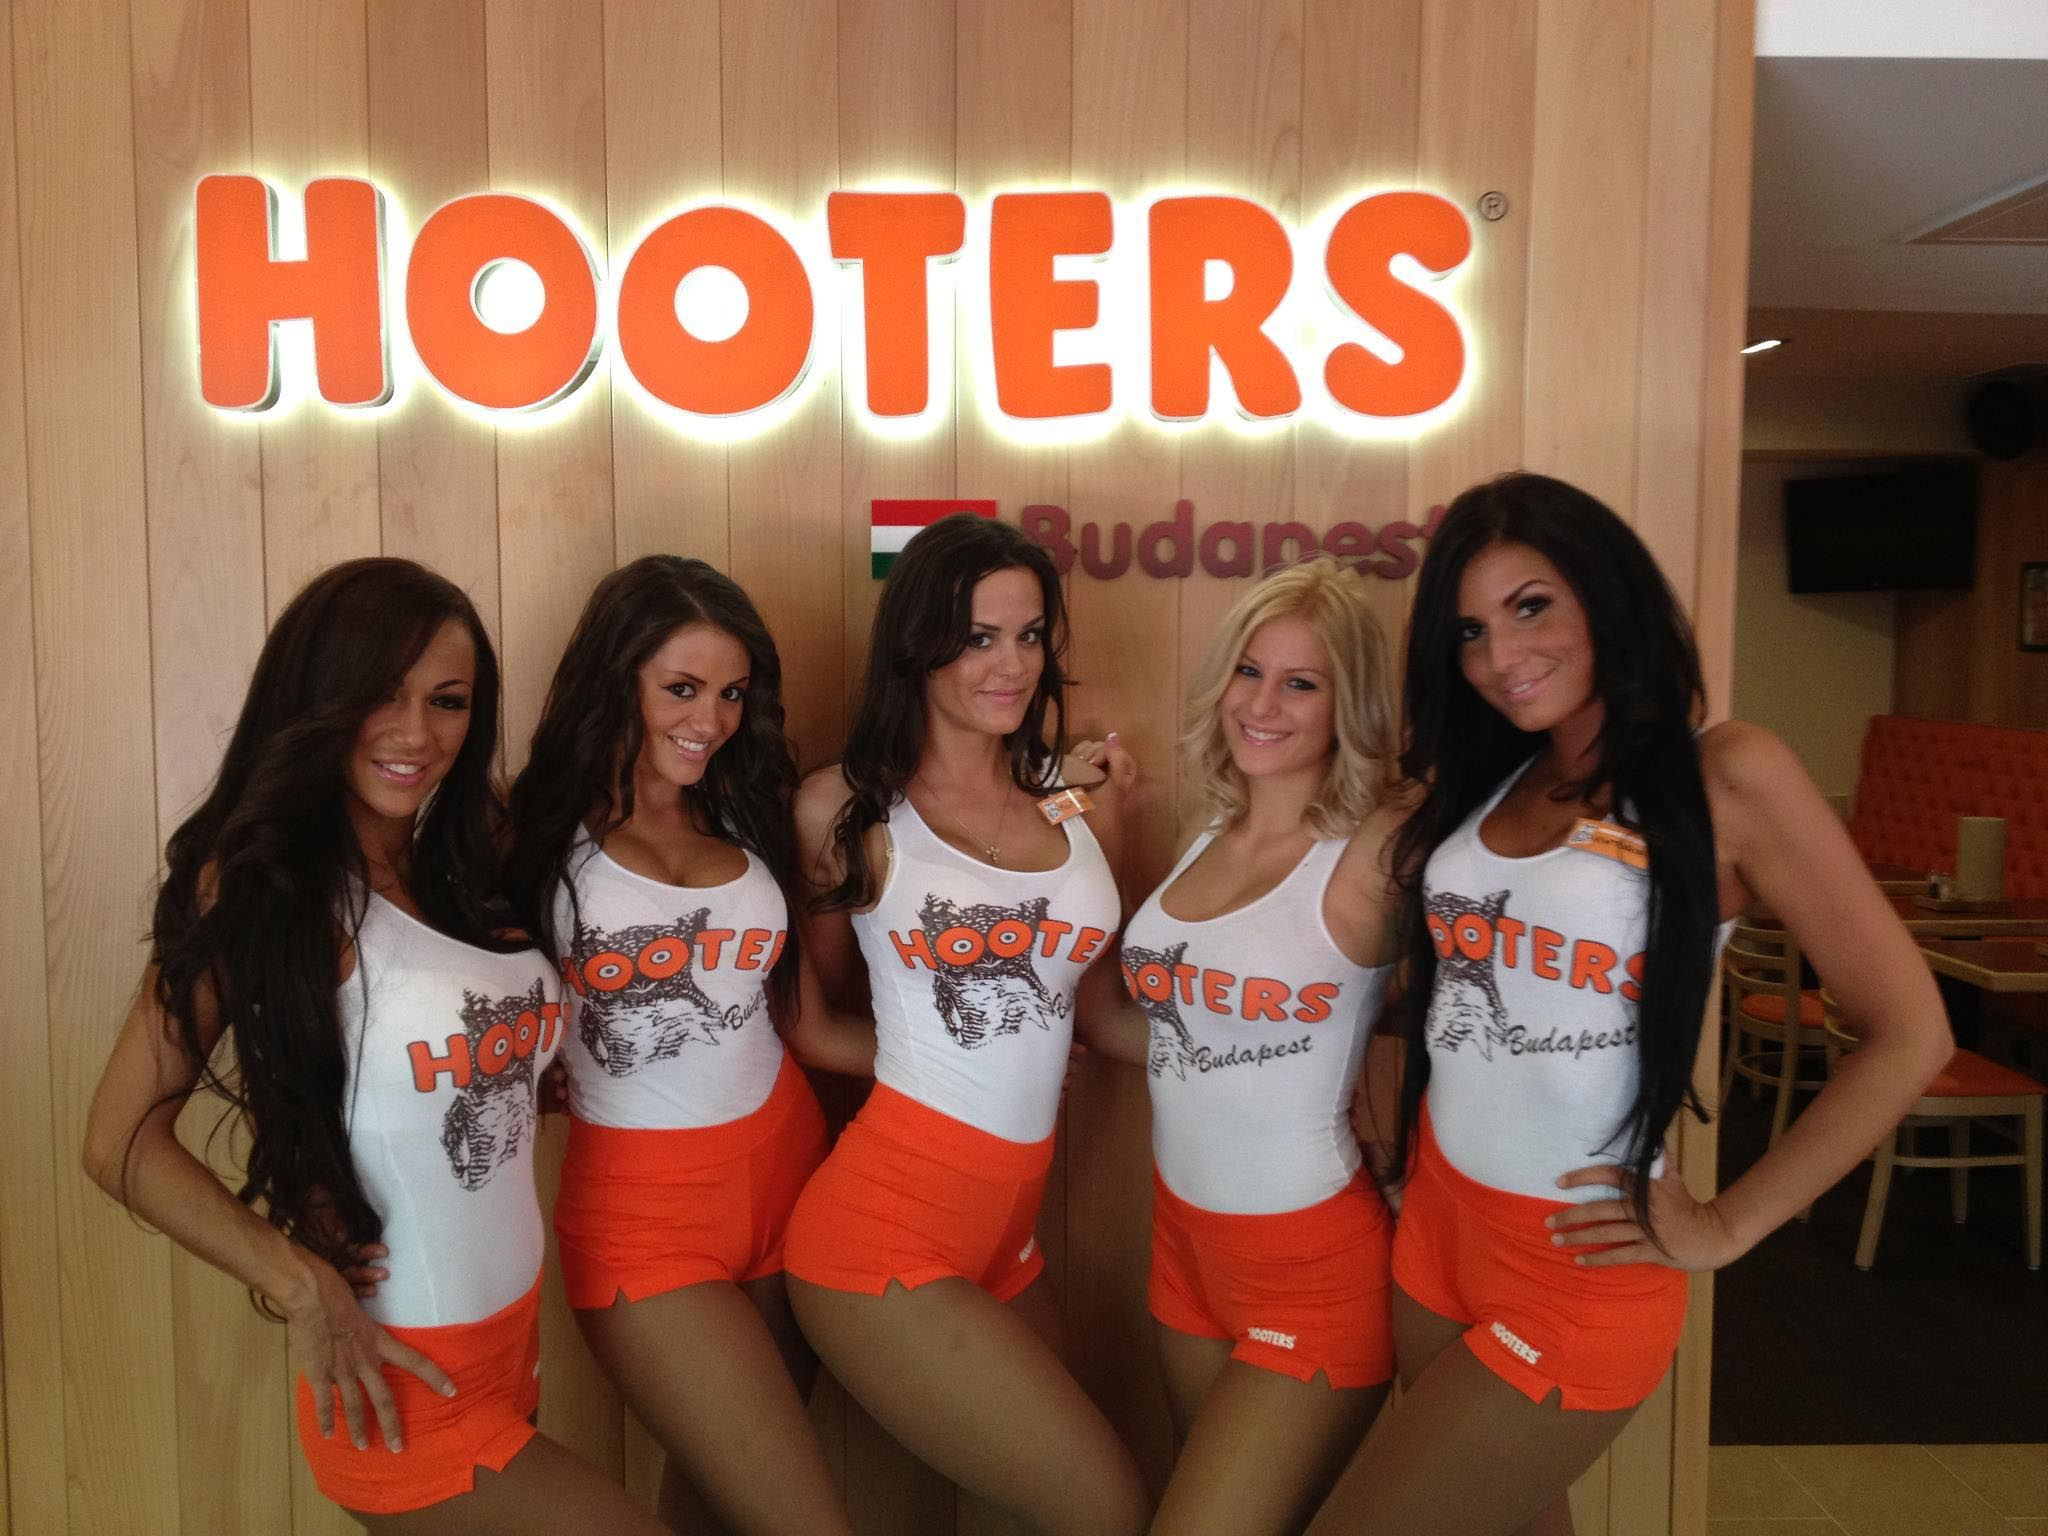 90ce478925491ca1fdf1f79e4fc79dcc - How To Get A Job At Hooters With No Experience